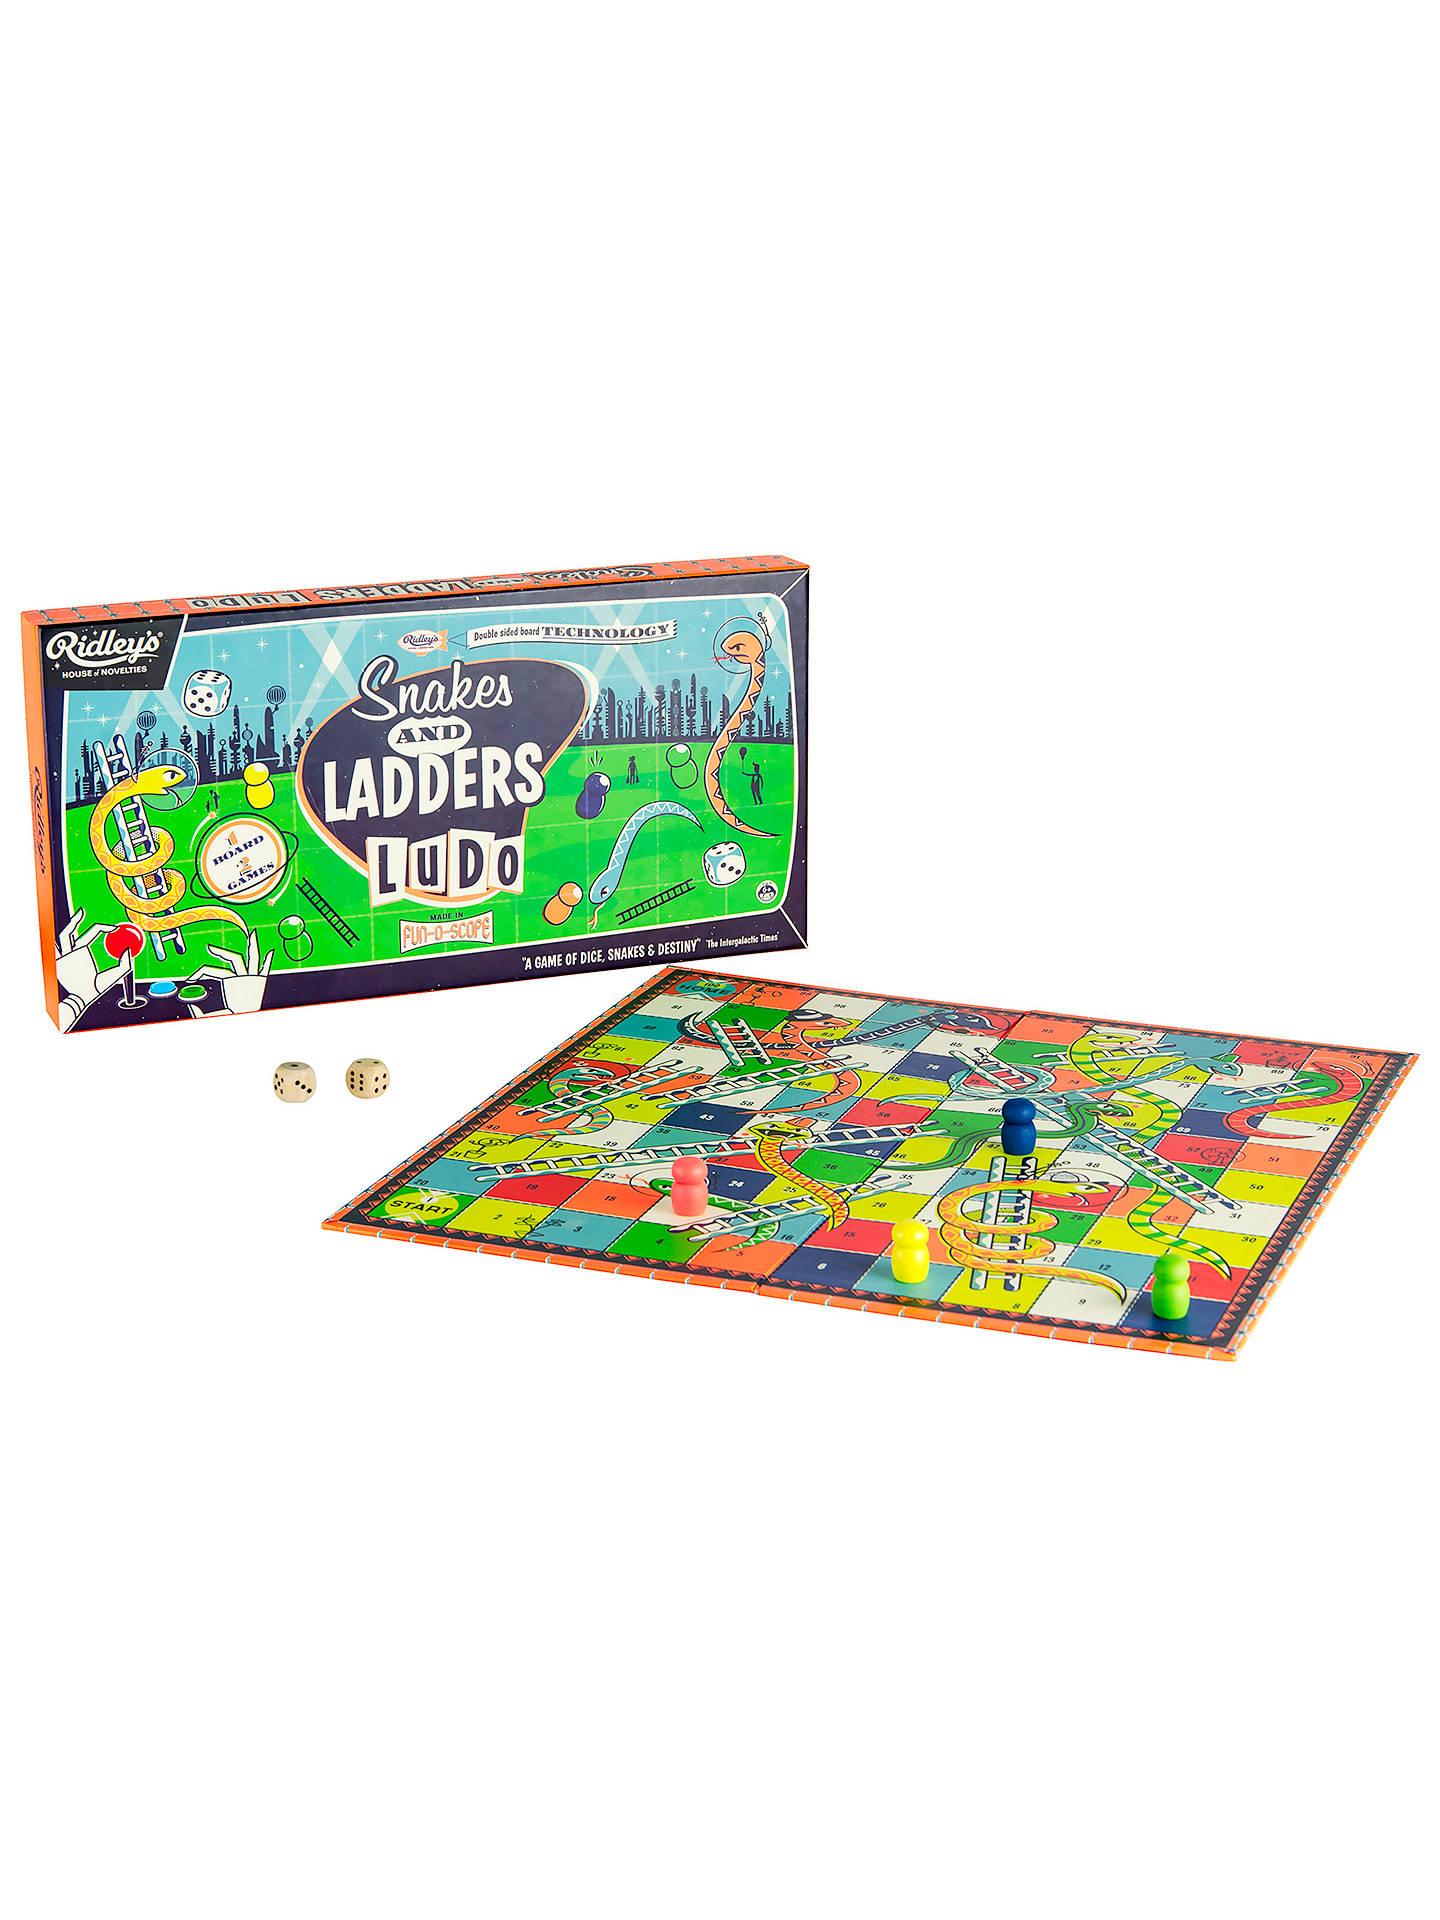 e274f82c2cf9 ... Buy Ridley's Snakes And Ladders Board Game Online at johnlewis. ...